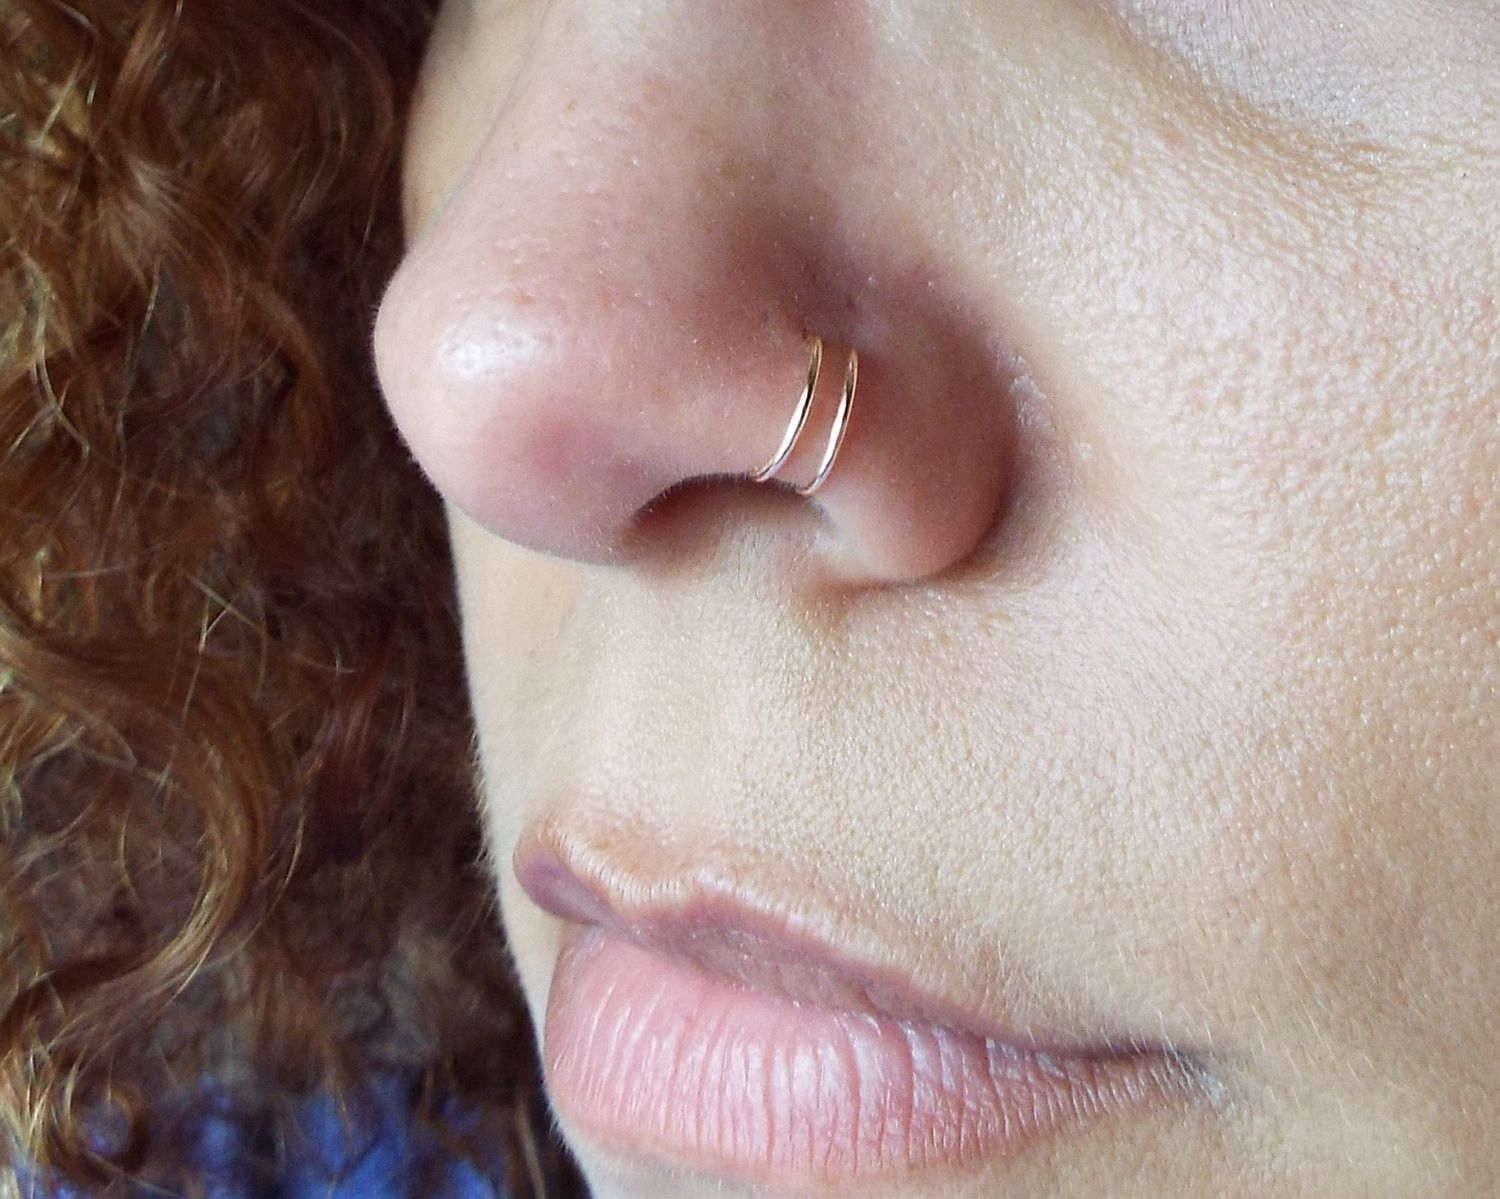 Nose piercing hole closed up  Tiny K Rose Gold Double Nose Ring Lip Ring Fake Piercing  Pier